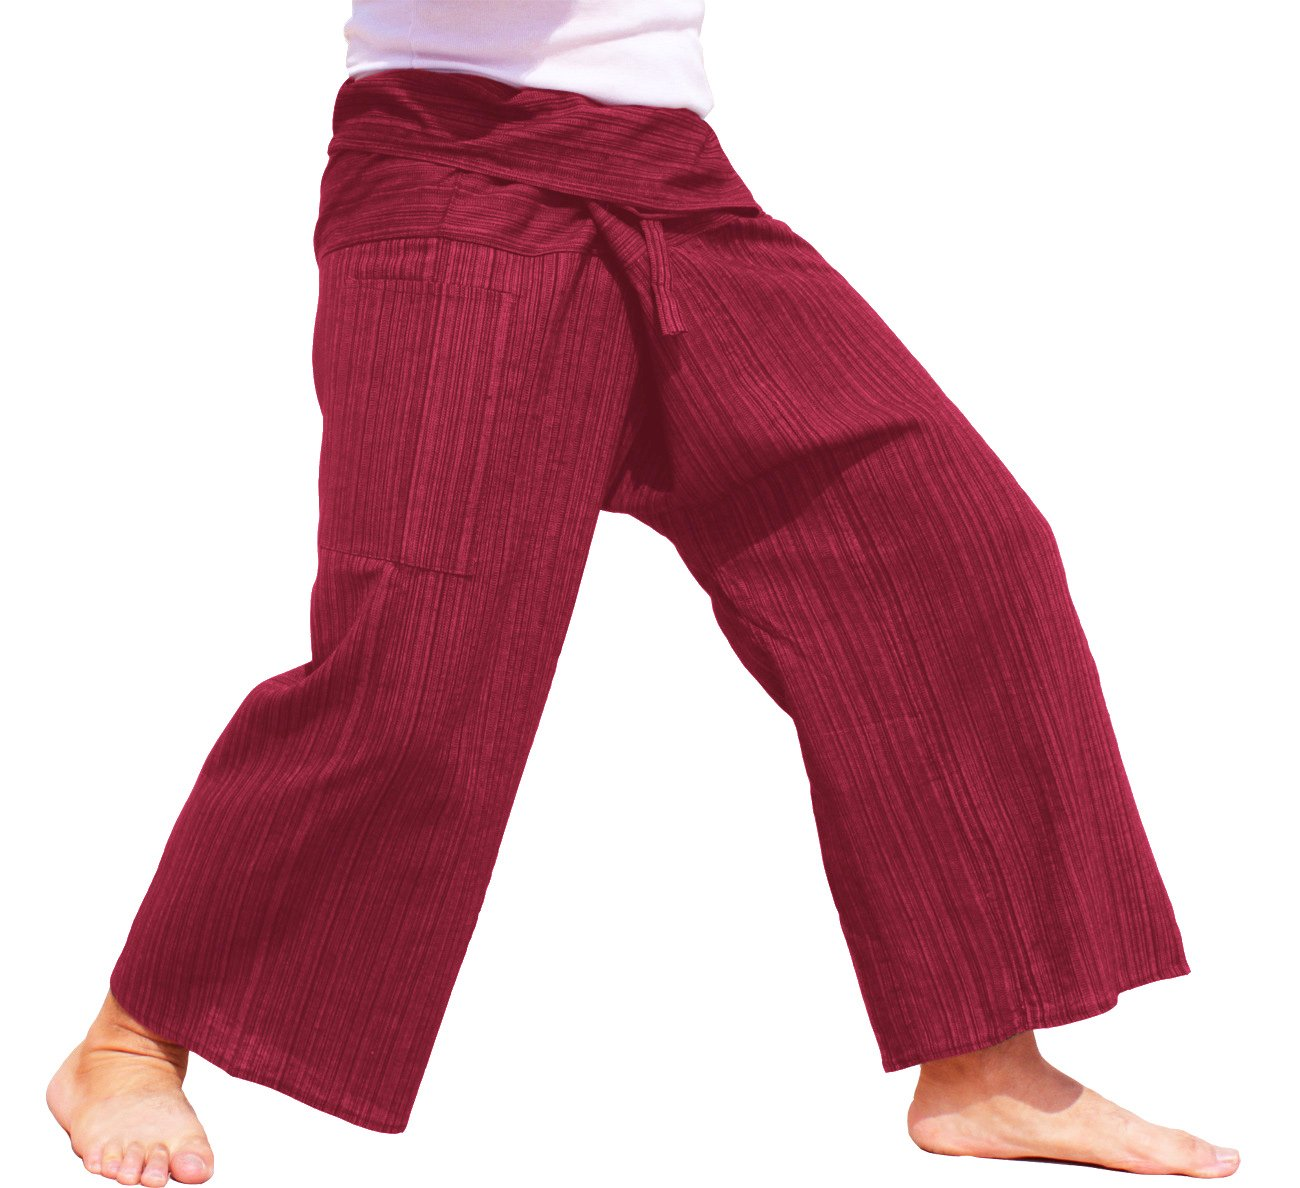 RaanPahMuang Light Striped Cotton Tall Thai Fisherman Wrap Pants Plus, XX-Large, Heavy Red by RaanPahMuang